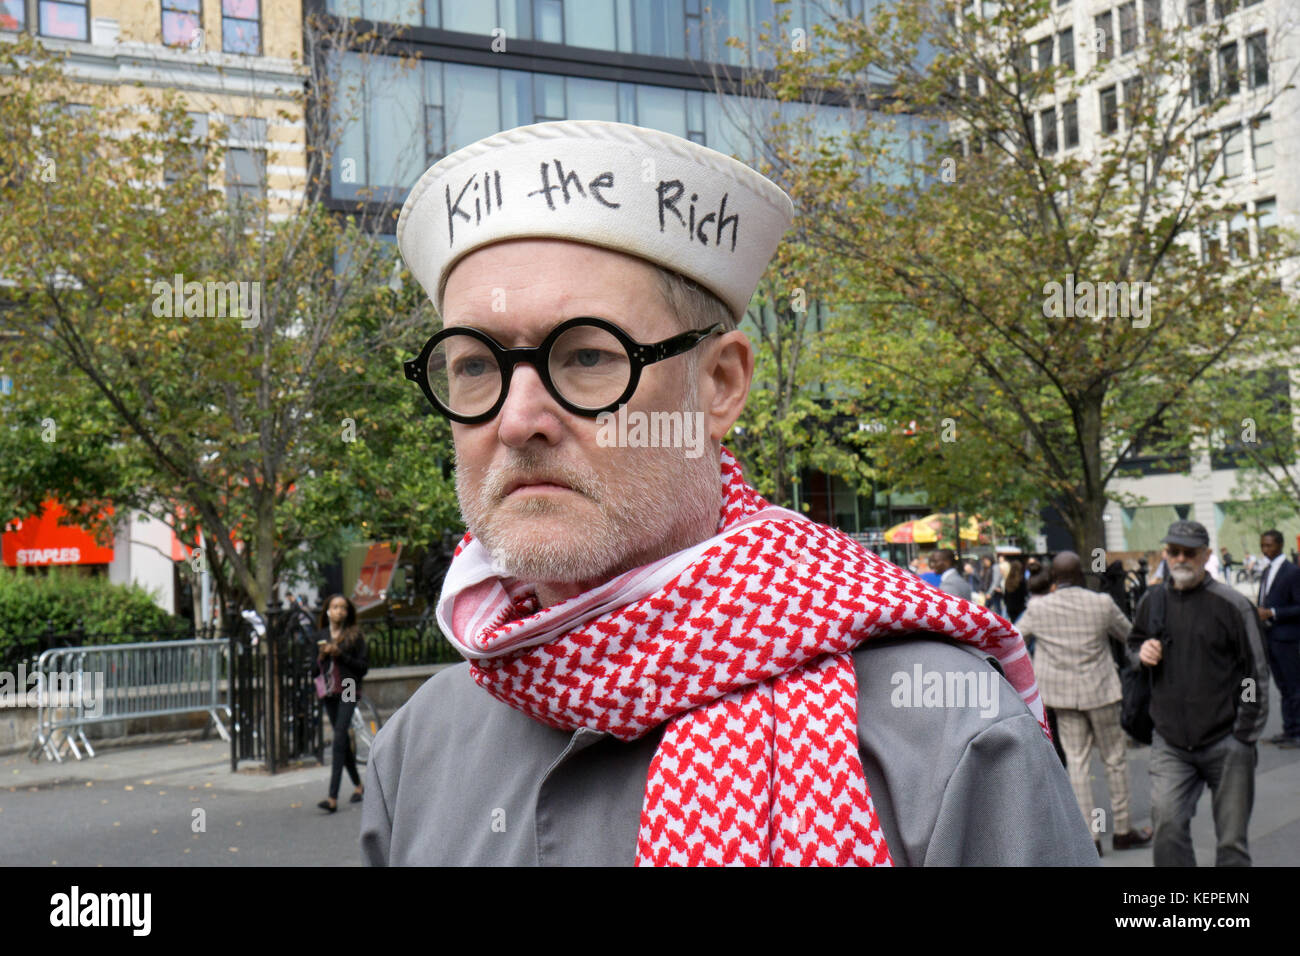 A man wearing a sailor hat that says 'Kill the Rich'in Union Square Park in Manhattan, New York City. - Stock Image